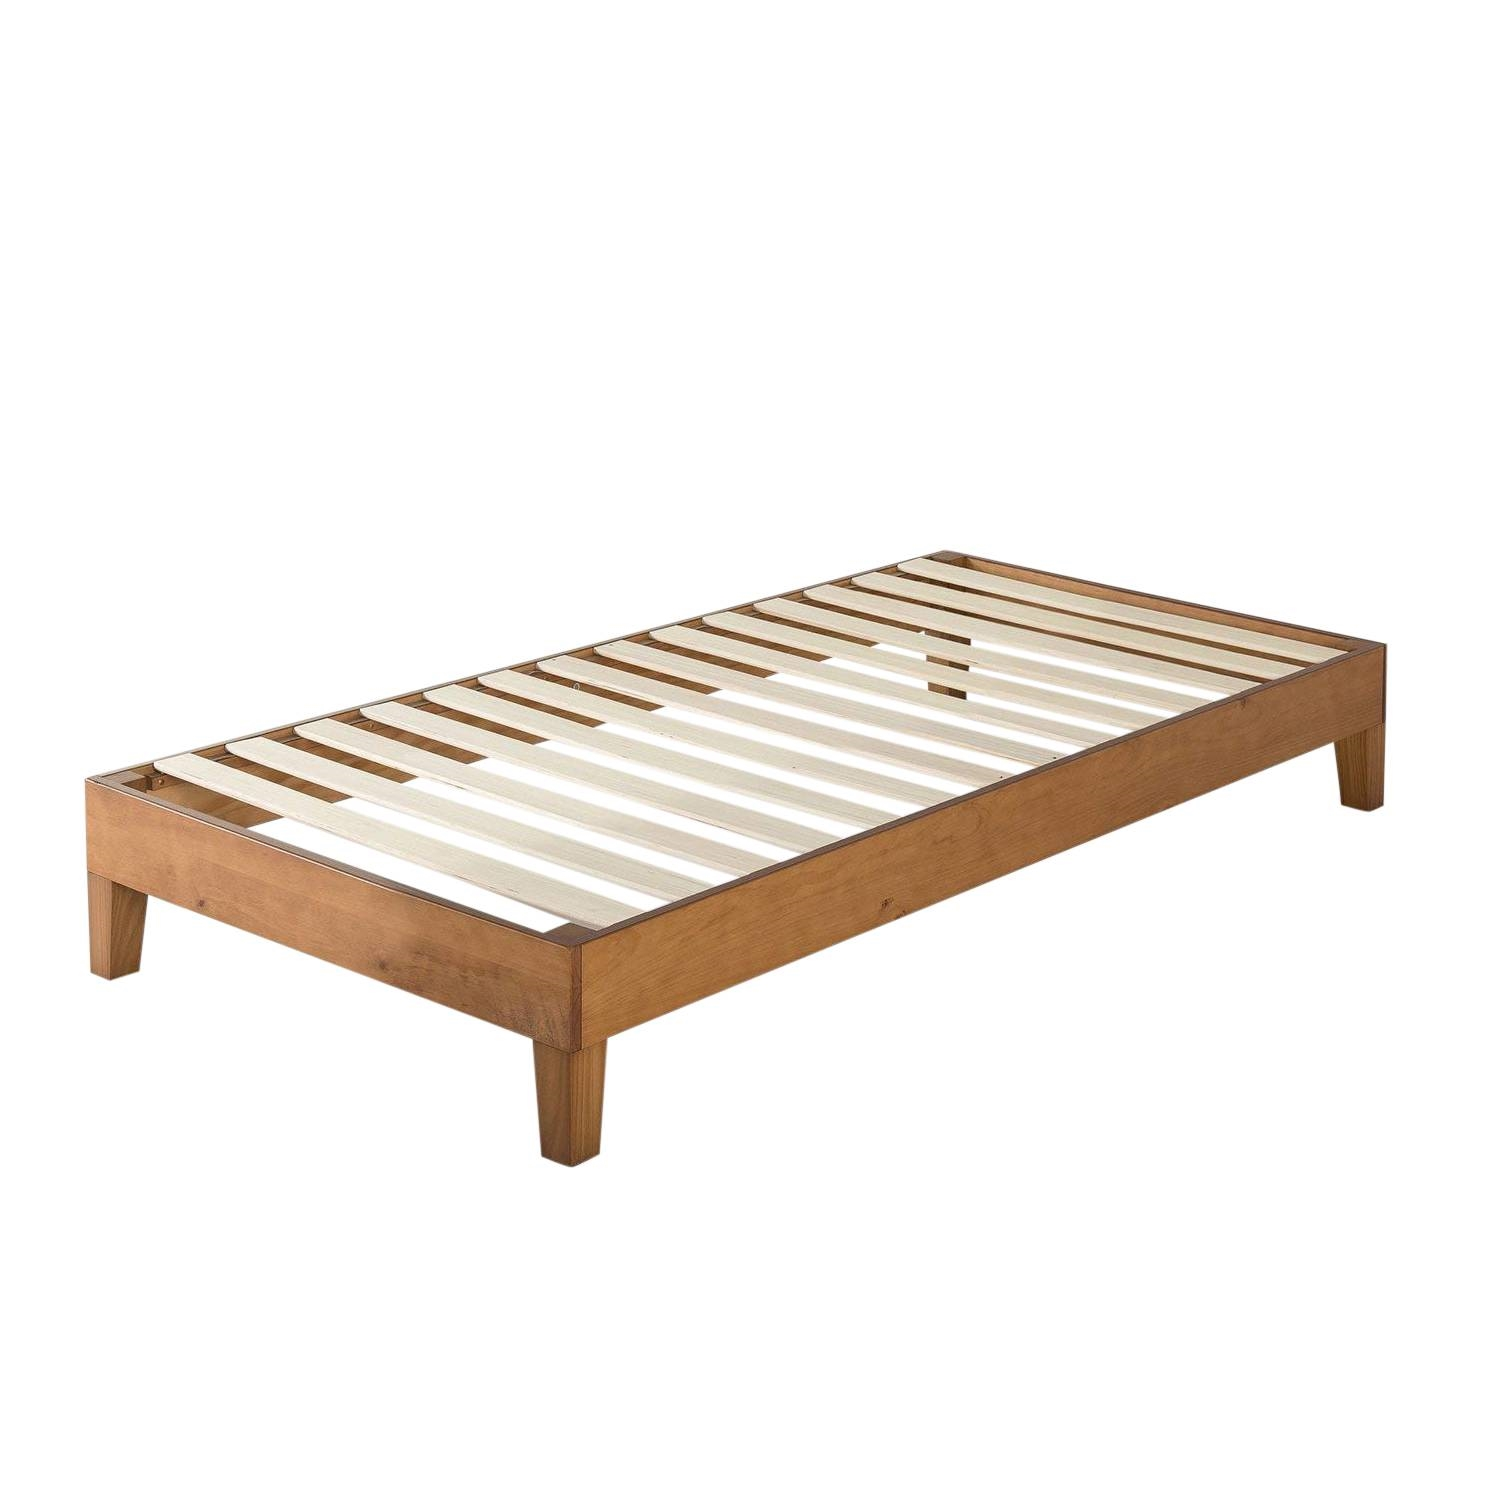 Twin Size Modern Solid Wood Platform Bed Frame In Natural Fastfurnishings Com